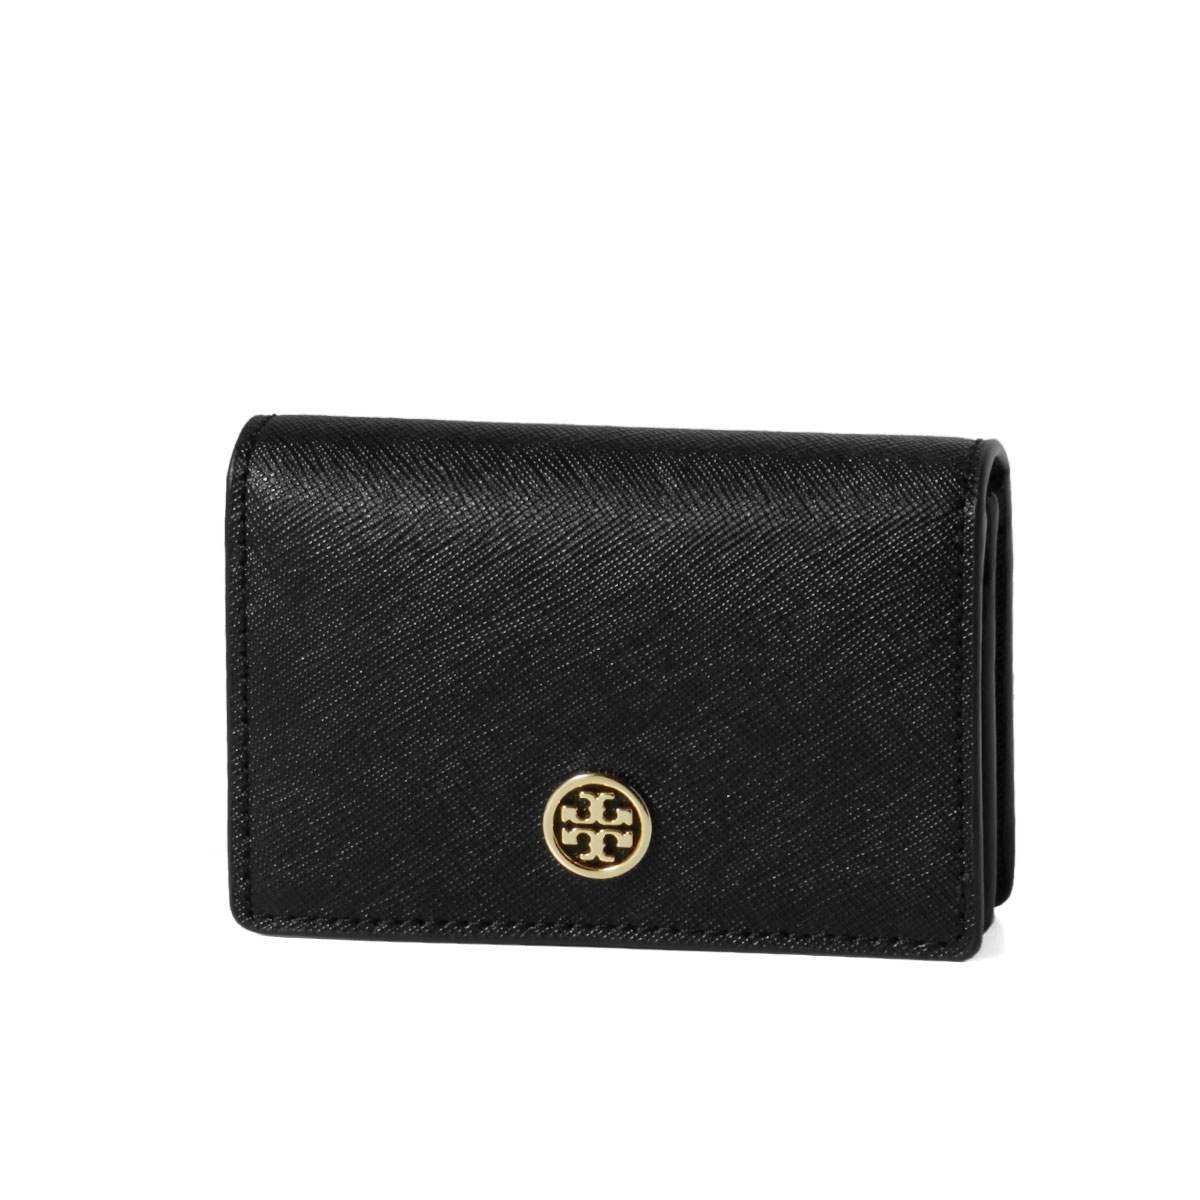 promo code 05ebb 23b60 Tolly Birch TORY BURCH card case Lady's 51189 001 ROBINSON Robinson BLACK  black